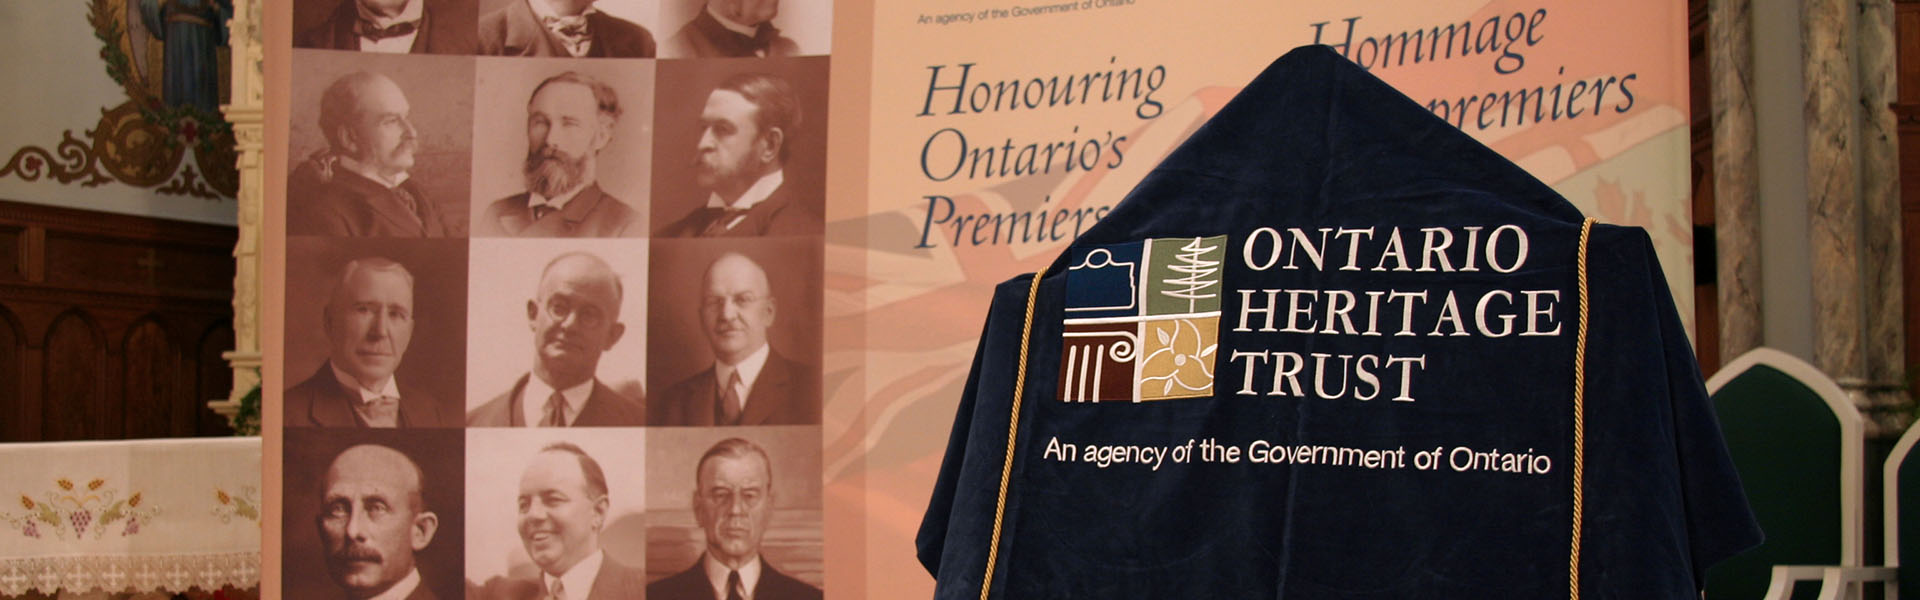 Premiers' Gravesites Program event, St. Andrews West